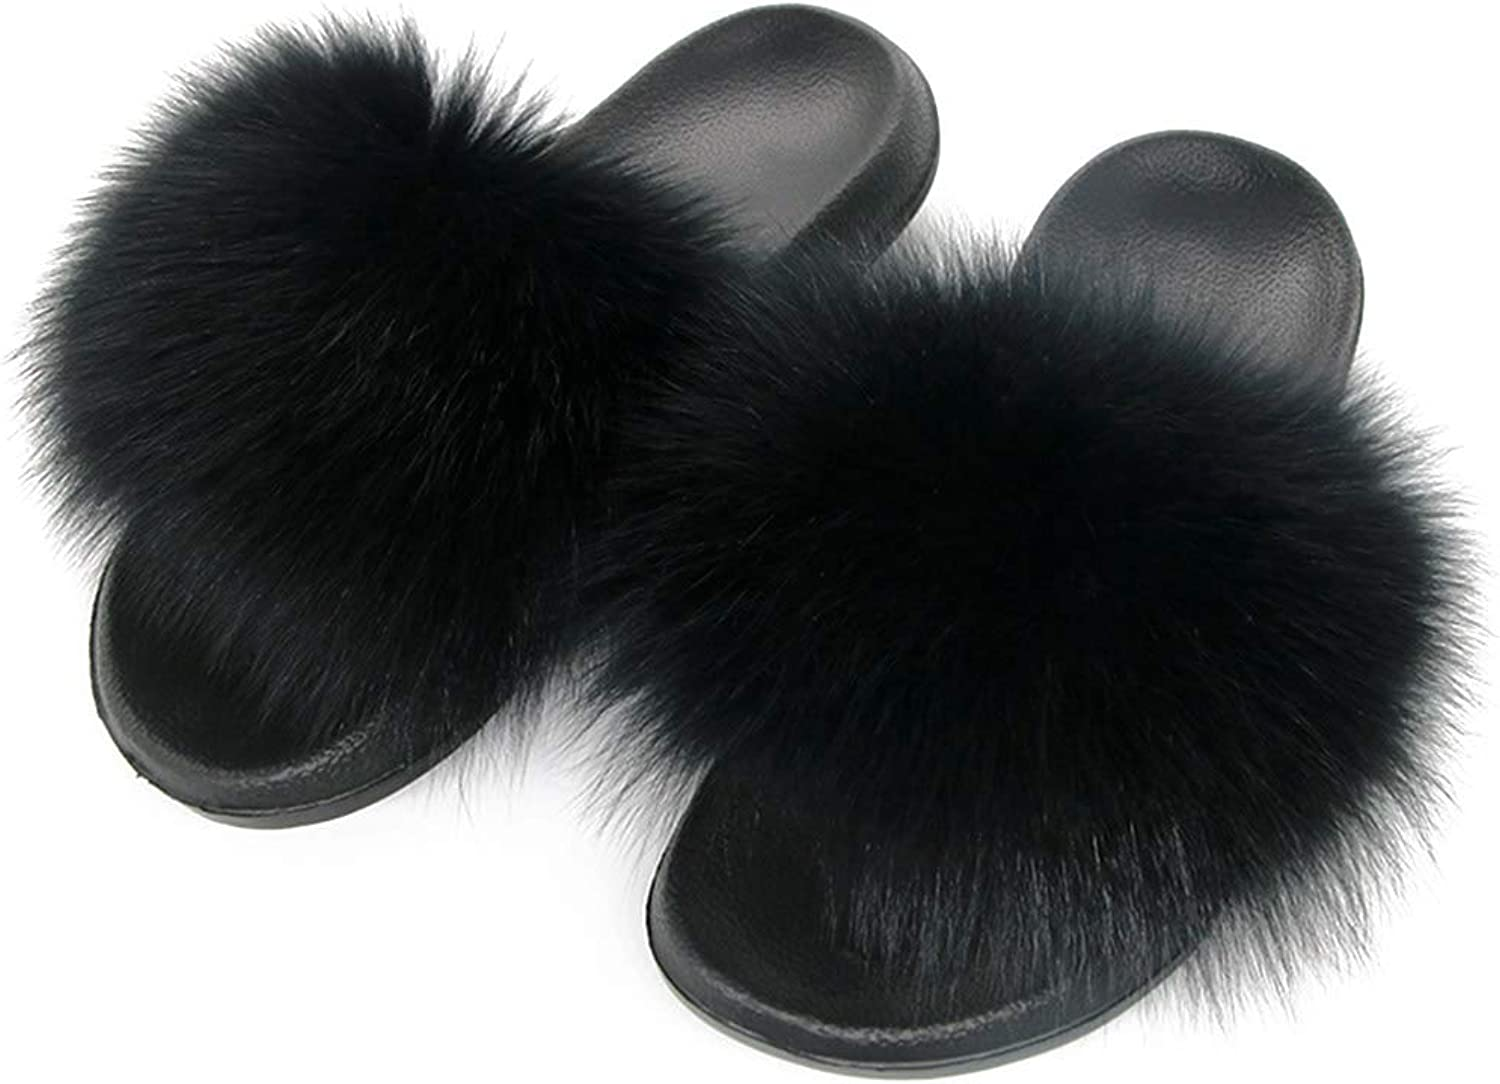 Winter Women Fur Slippers Female Sandals Heart-Shaped Mixed colors Fluffy Slides Home Plush shoes